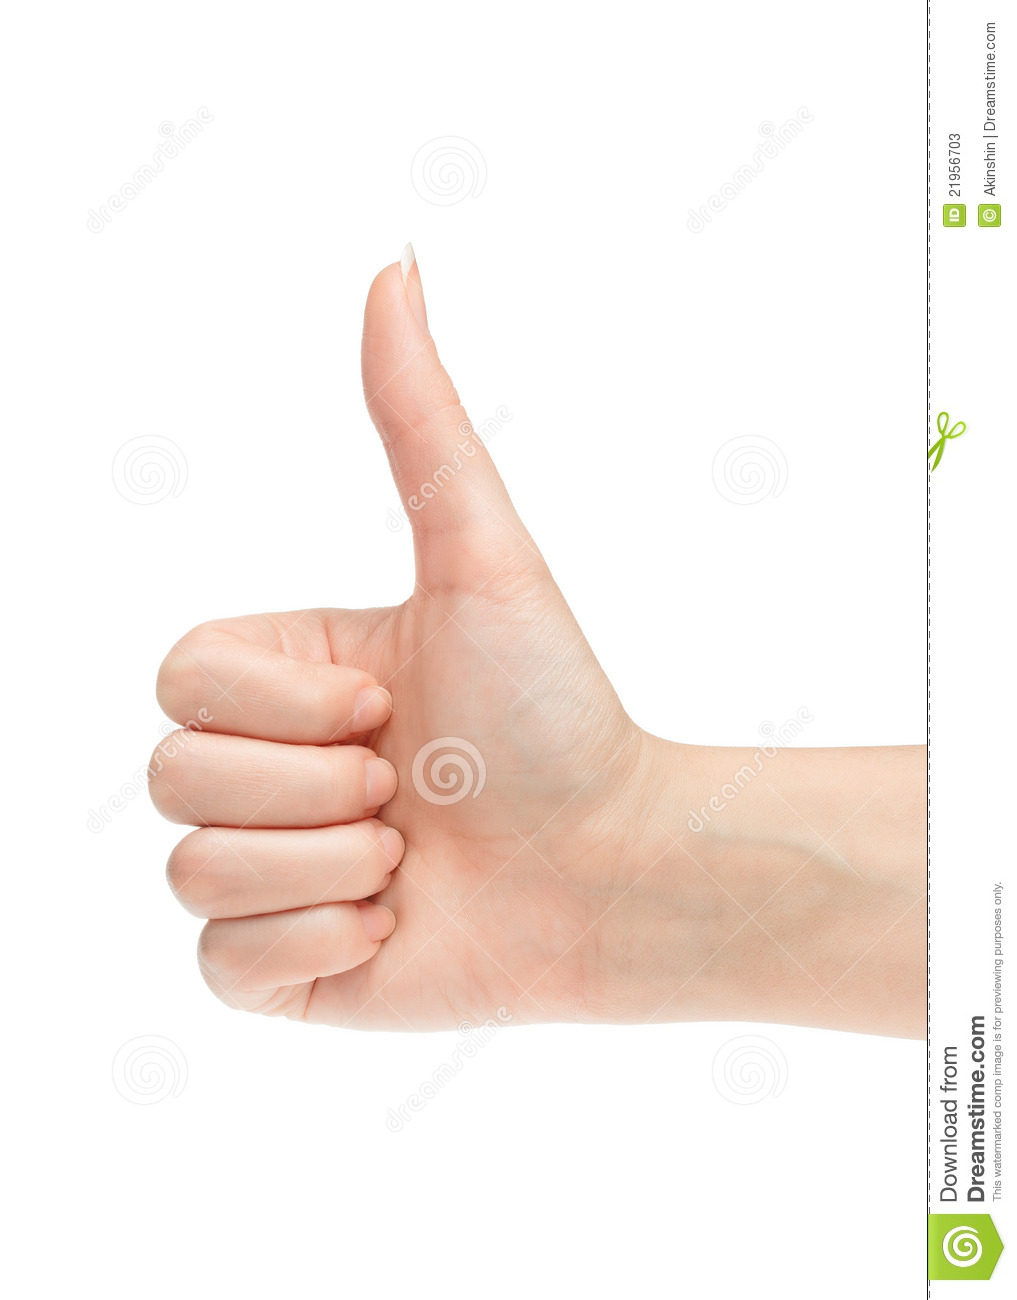 Stock Photo Young Man Gesture Being Late Watching Watch Isolated Over Whi White Image45723984 together with Hand Sign Ok Image 3563669 likewise Royalty Free Stock Photos Male Fist Breaking White Paper Image29696968 furthermore Stock Photos Ok Gesture Hand Image21956703 in addition Goper Laura Ingraham Just Give Nazi Salute Rnc. on wrist gesture i